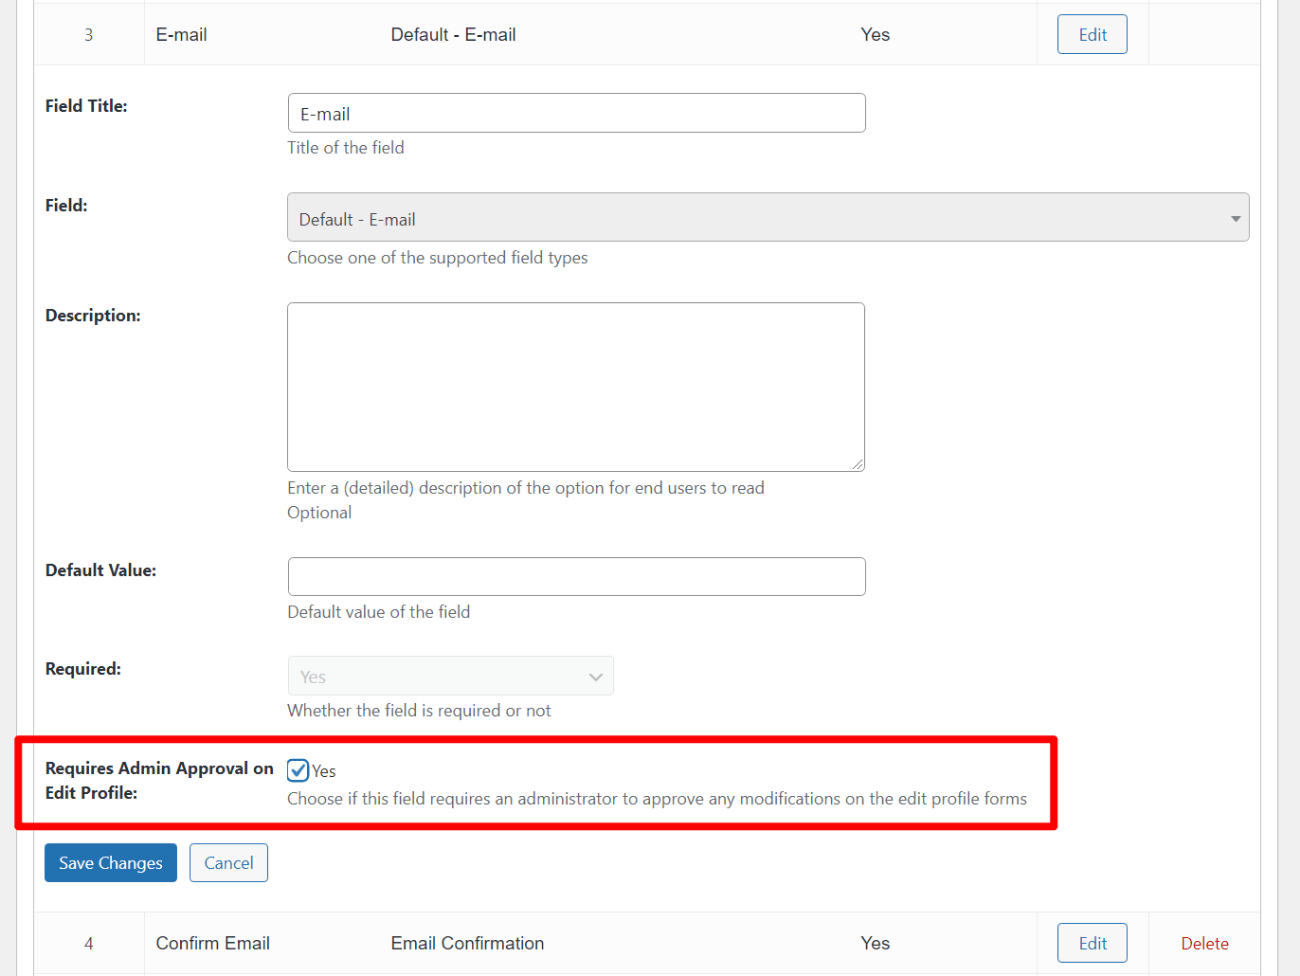 Require admin approval for edit profile